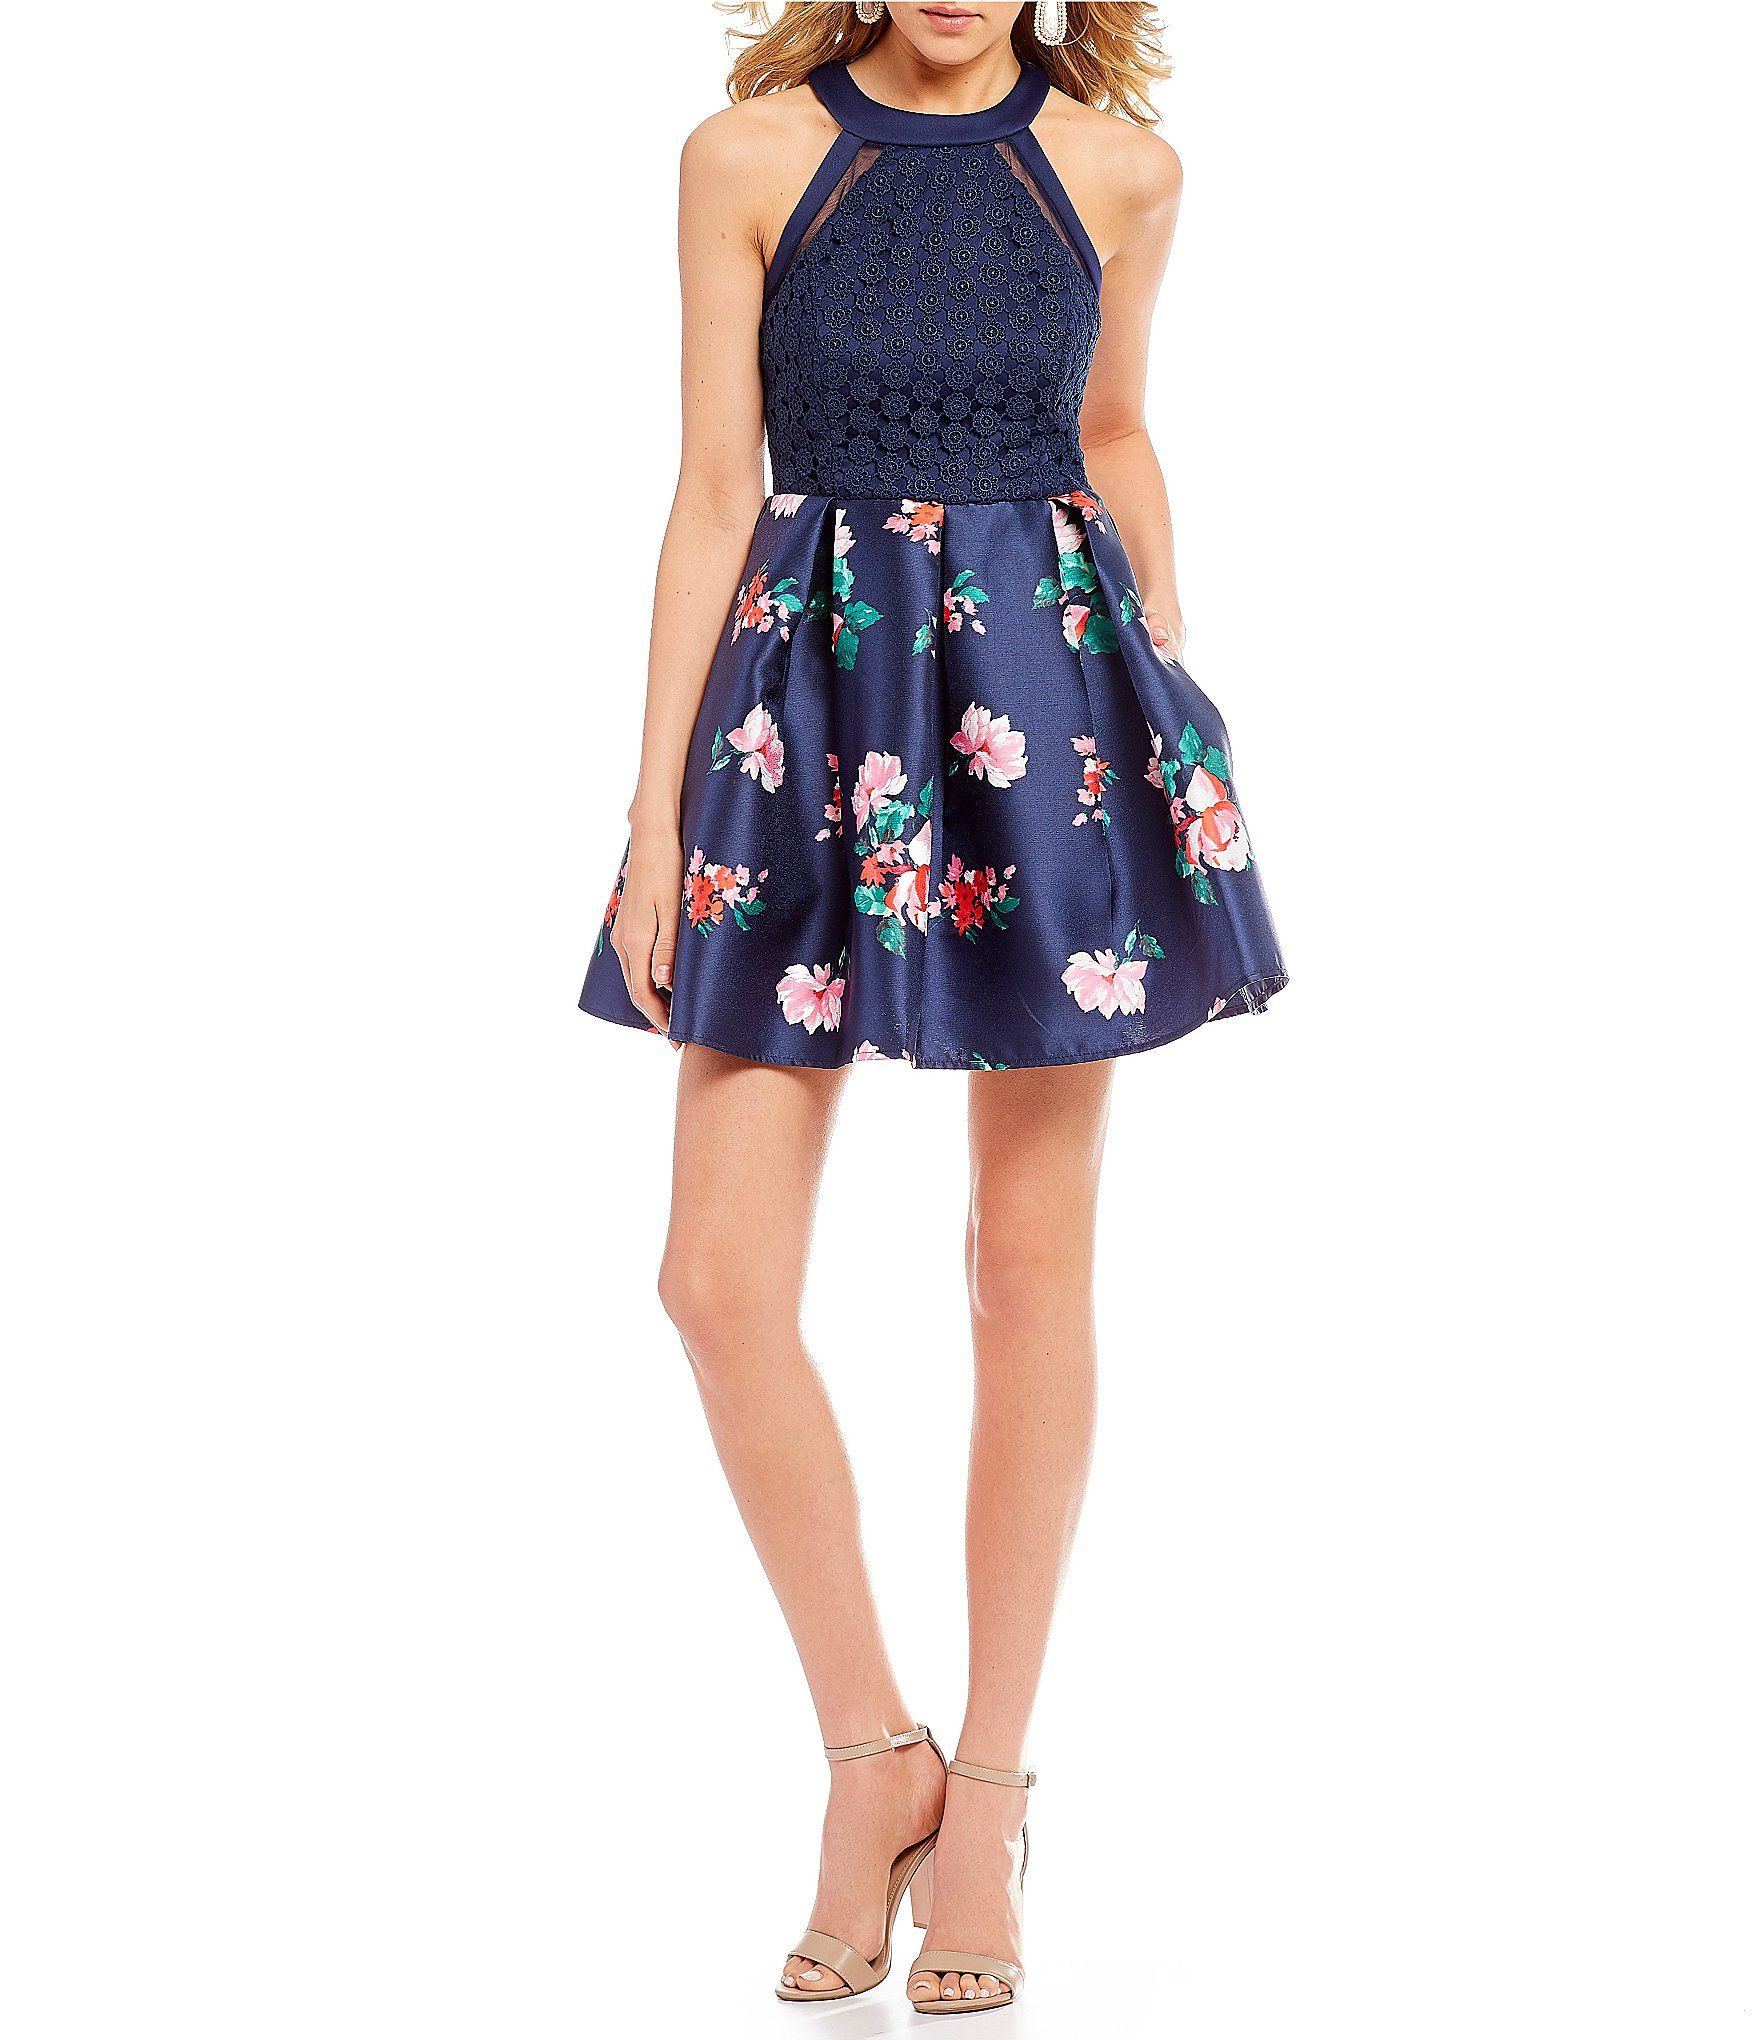 b56d4cfaa4 Shop for Teeze Me High Neck Floral Skirt Fit-And-Flare Dress at  Dillards.com. Visit Dillards.com to find clothing